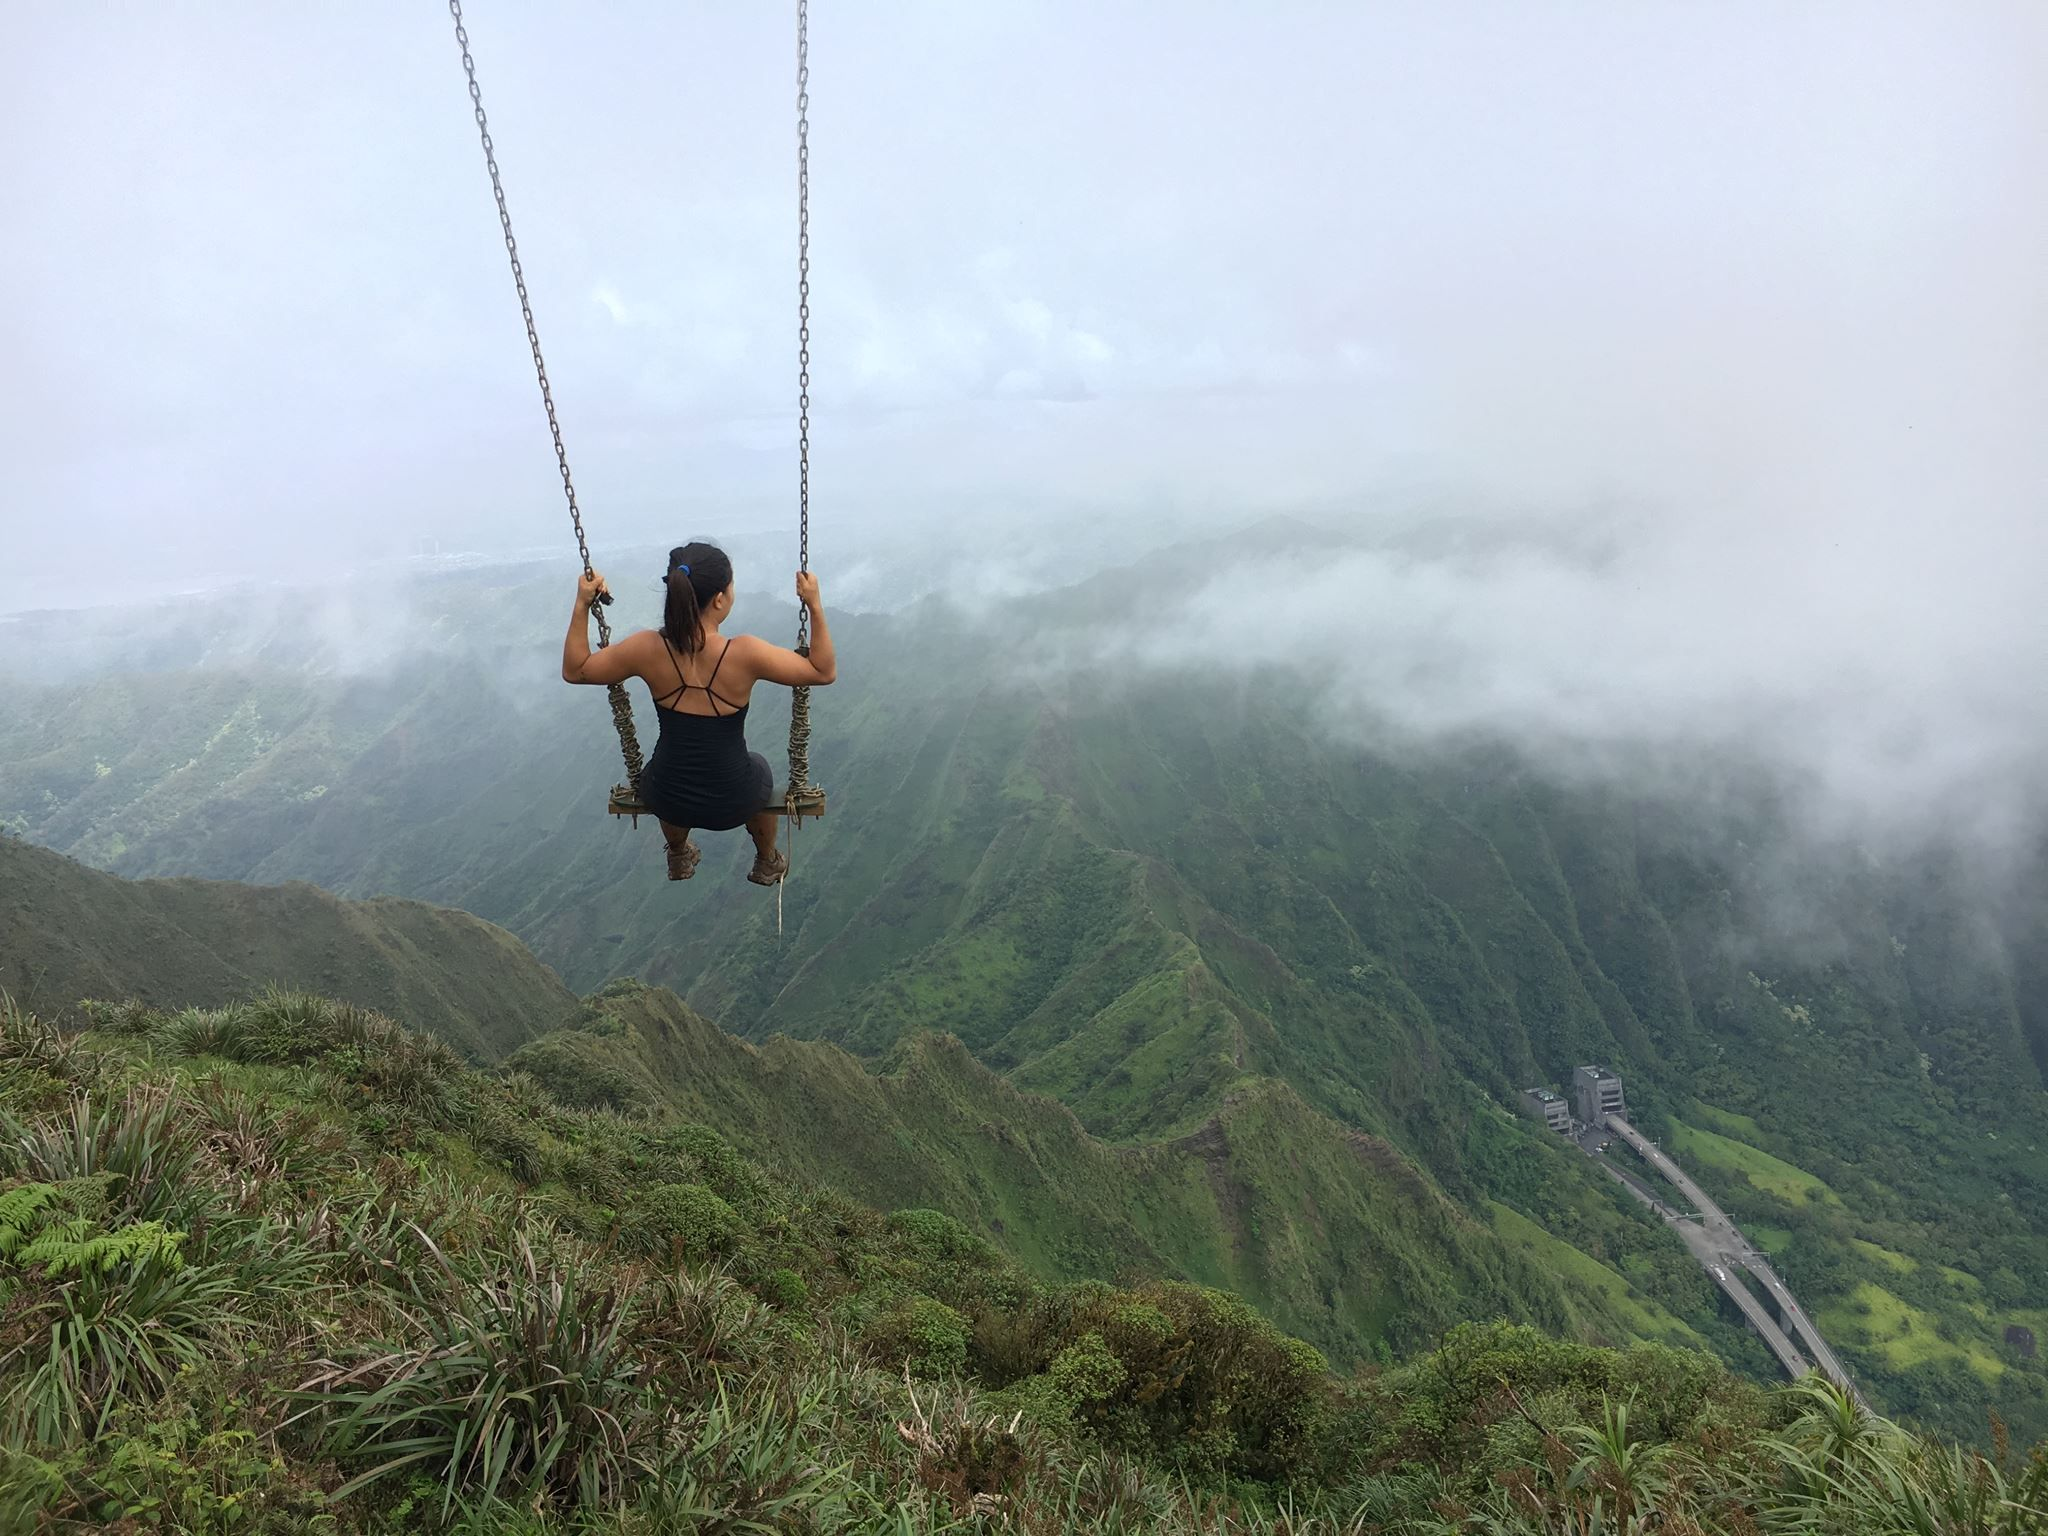 Swing in the sky - at the top of Stairway to Heaven in Hawaii this ...